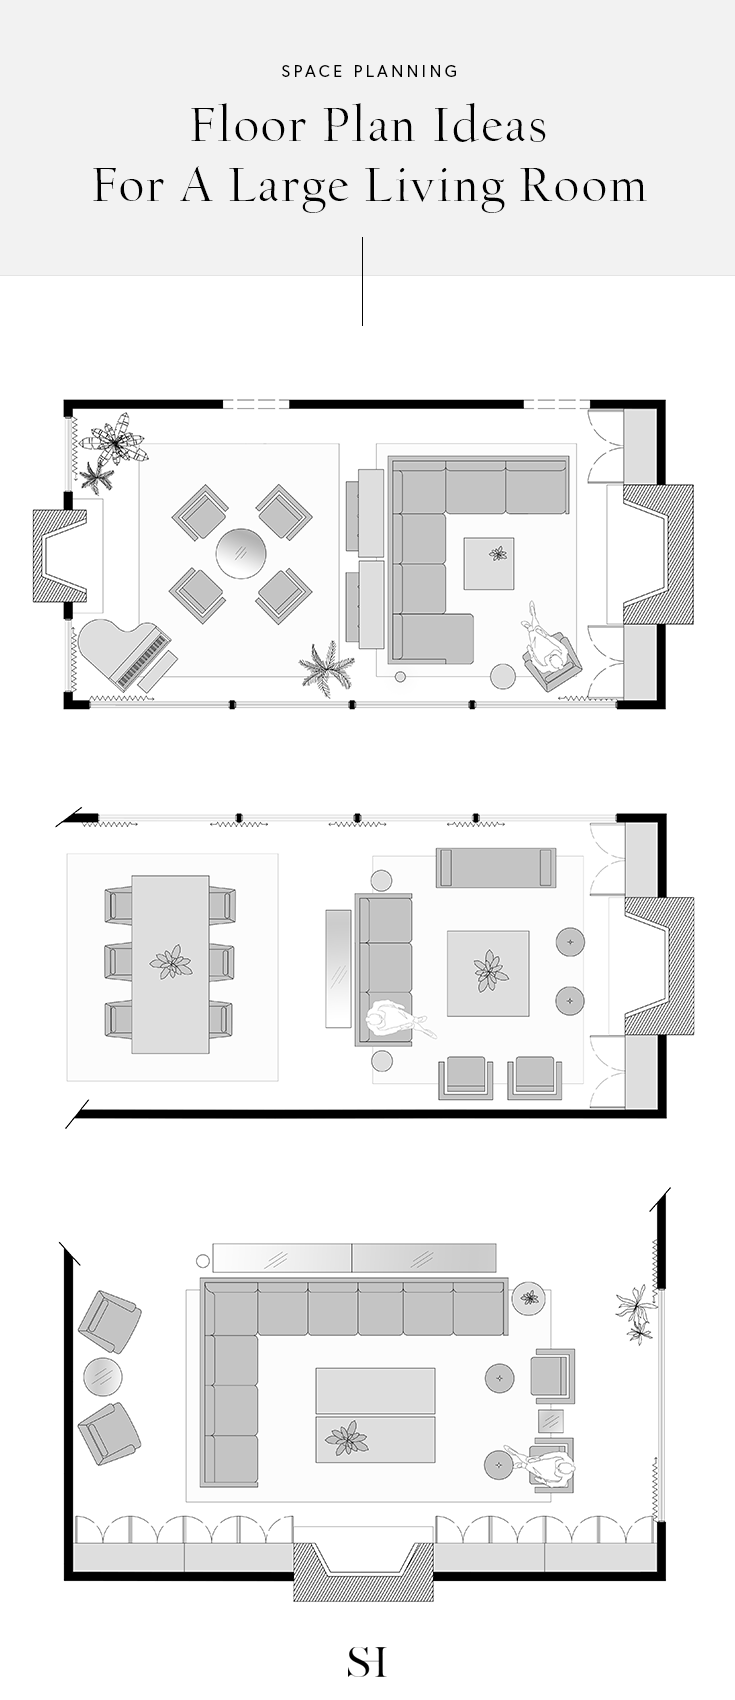 5 Furniture Layout Ideas For A Large Living Room With Floor Plans Garden Design L Large Living Room Design Rectangular Living Rooms Living Room Floor Plans